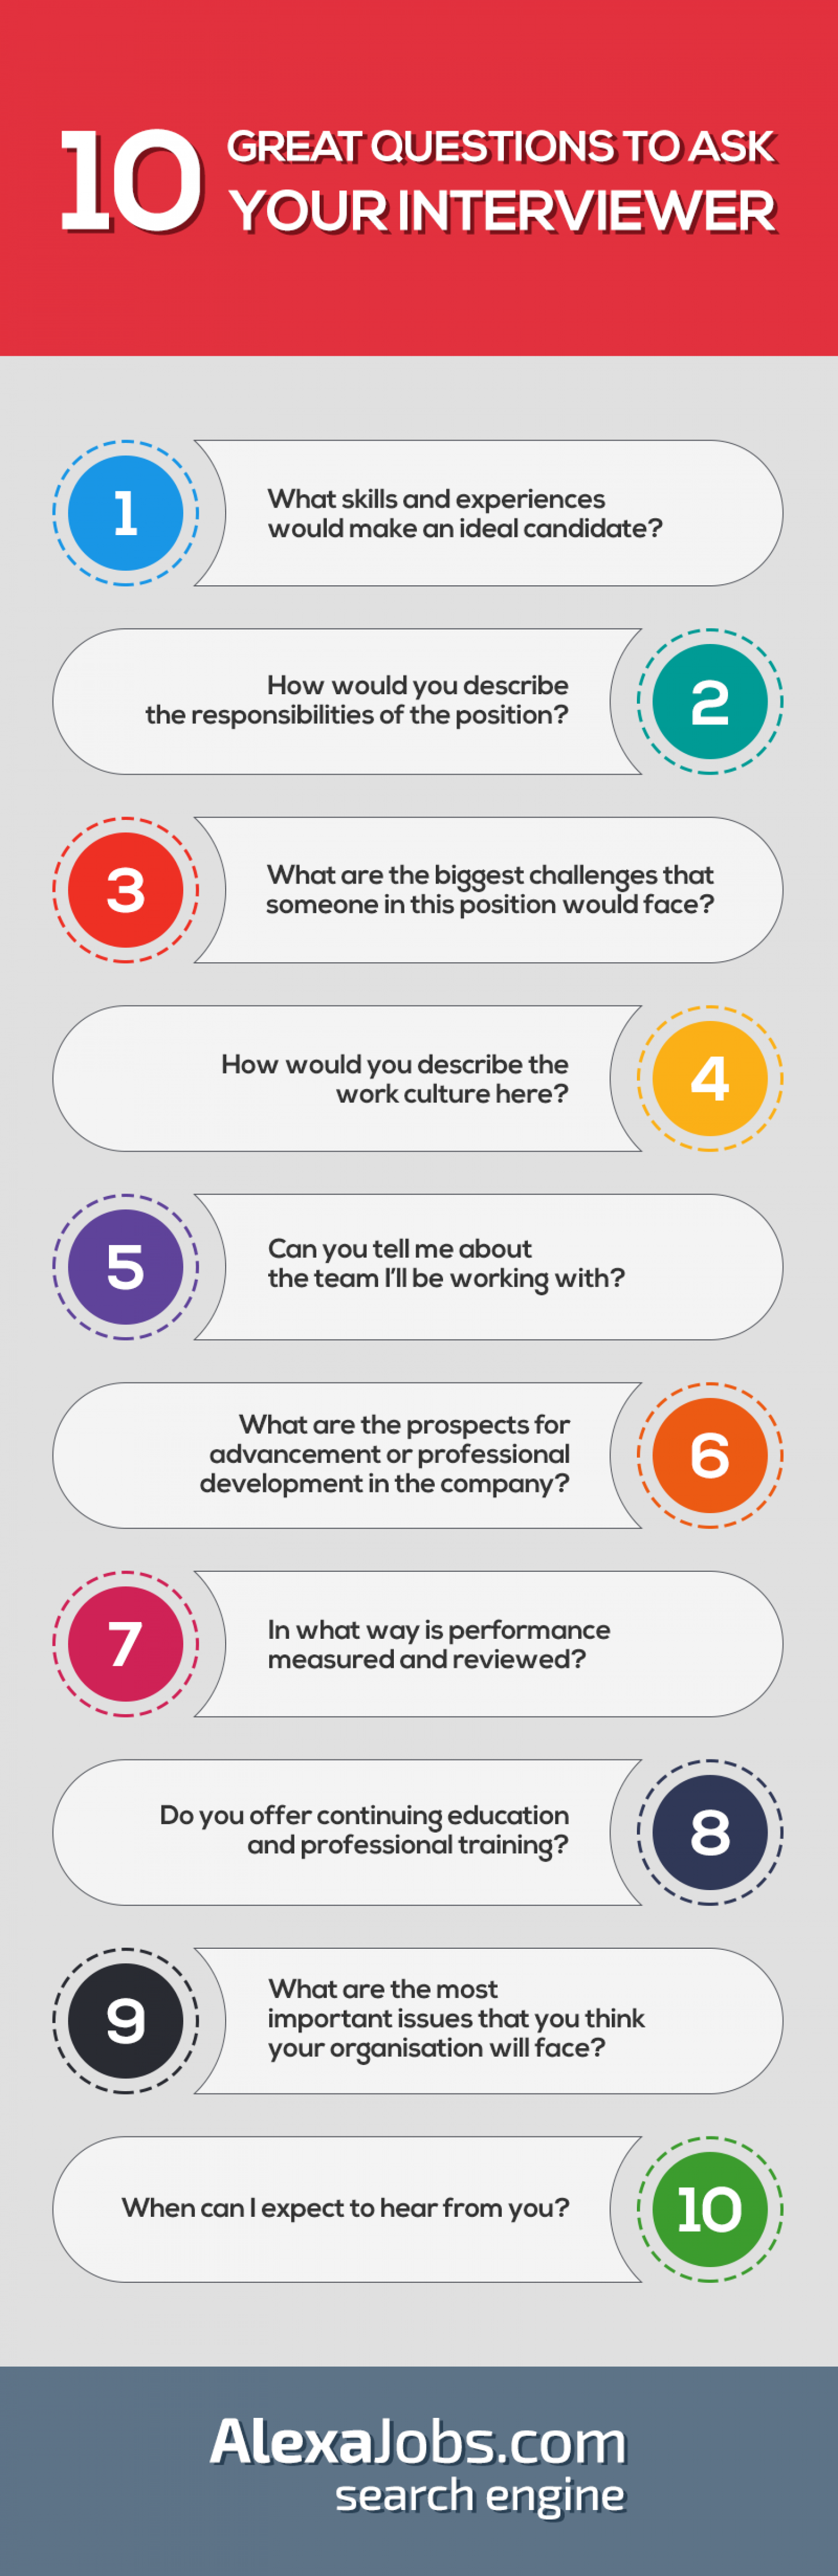 10 Great Questions To Ask Your Interviewer. Infographic